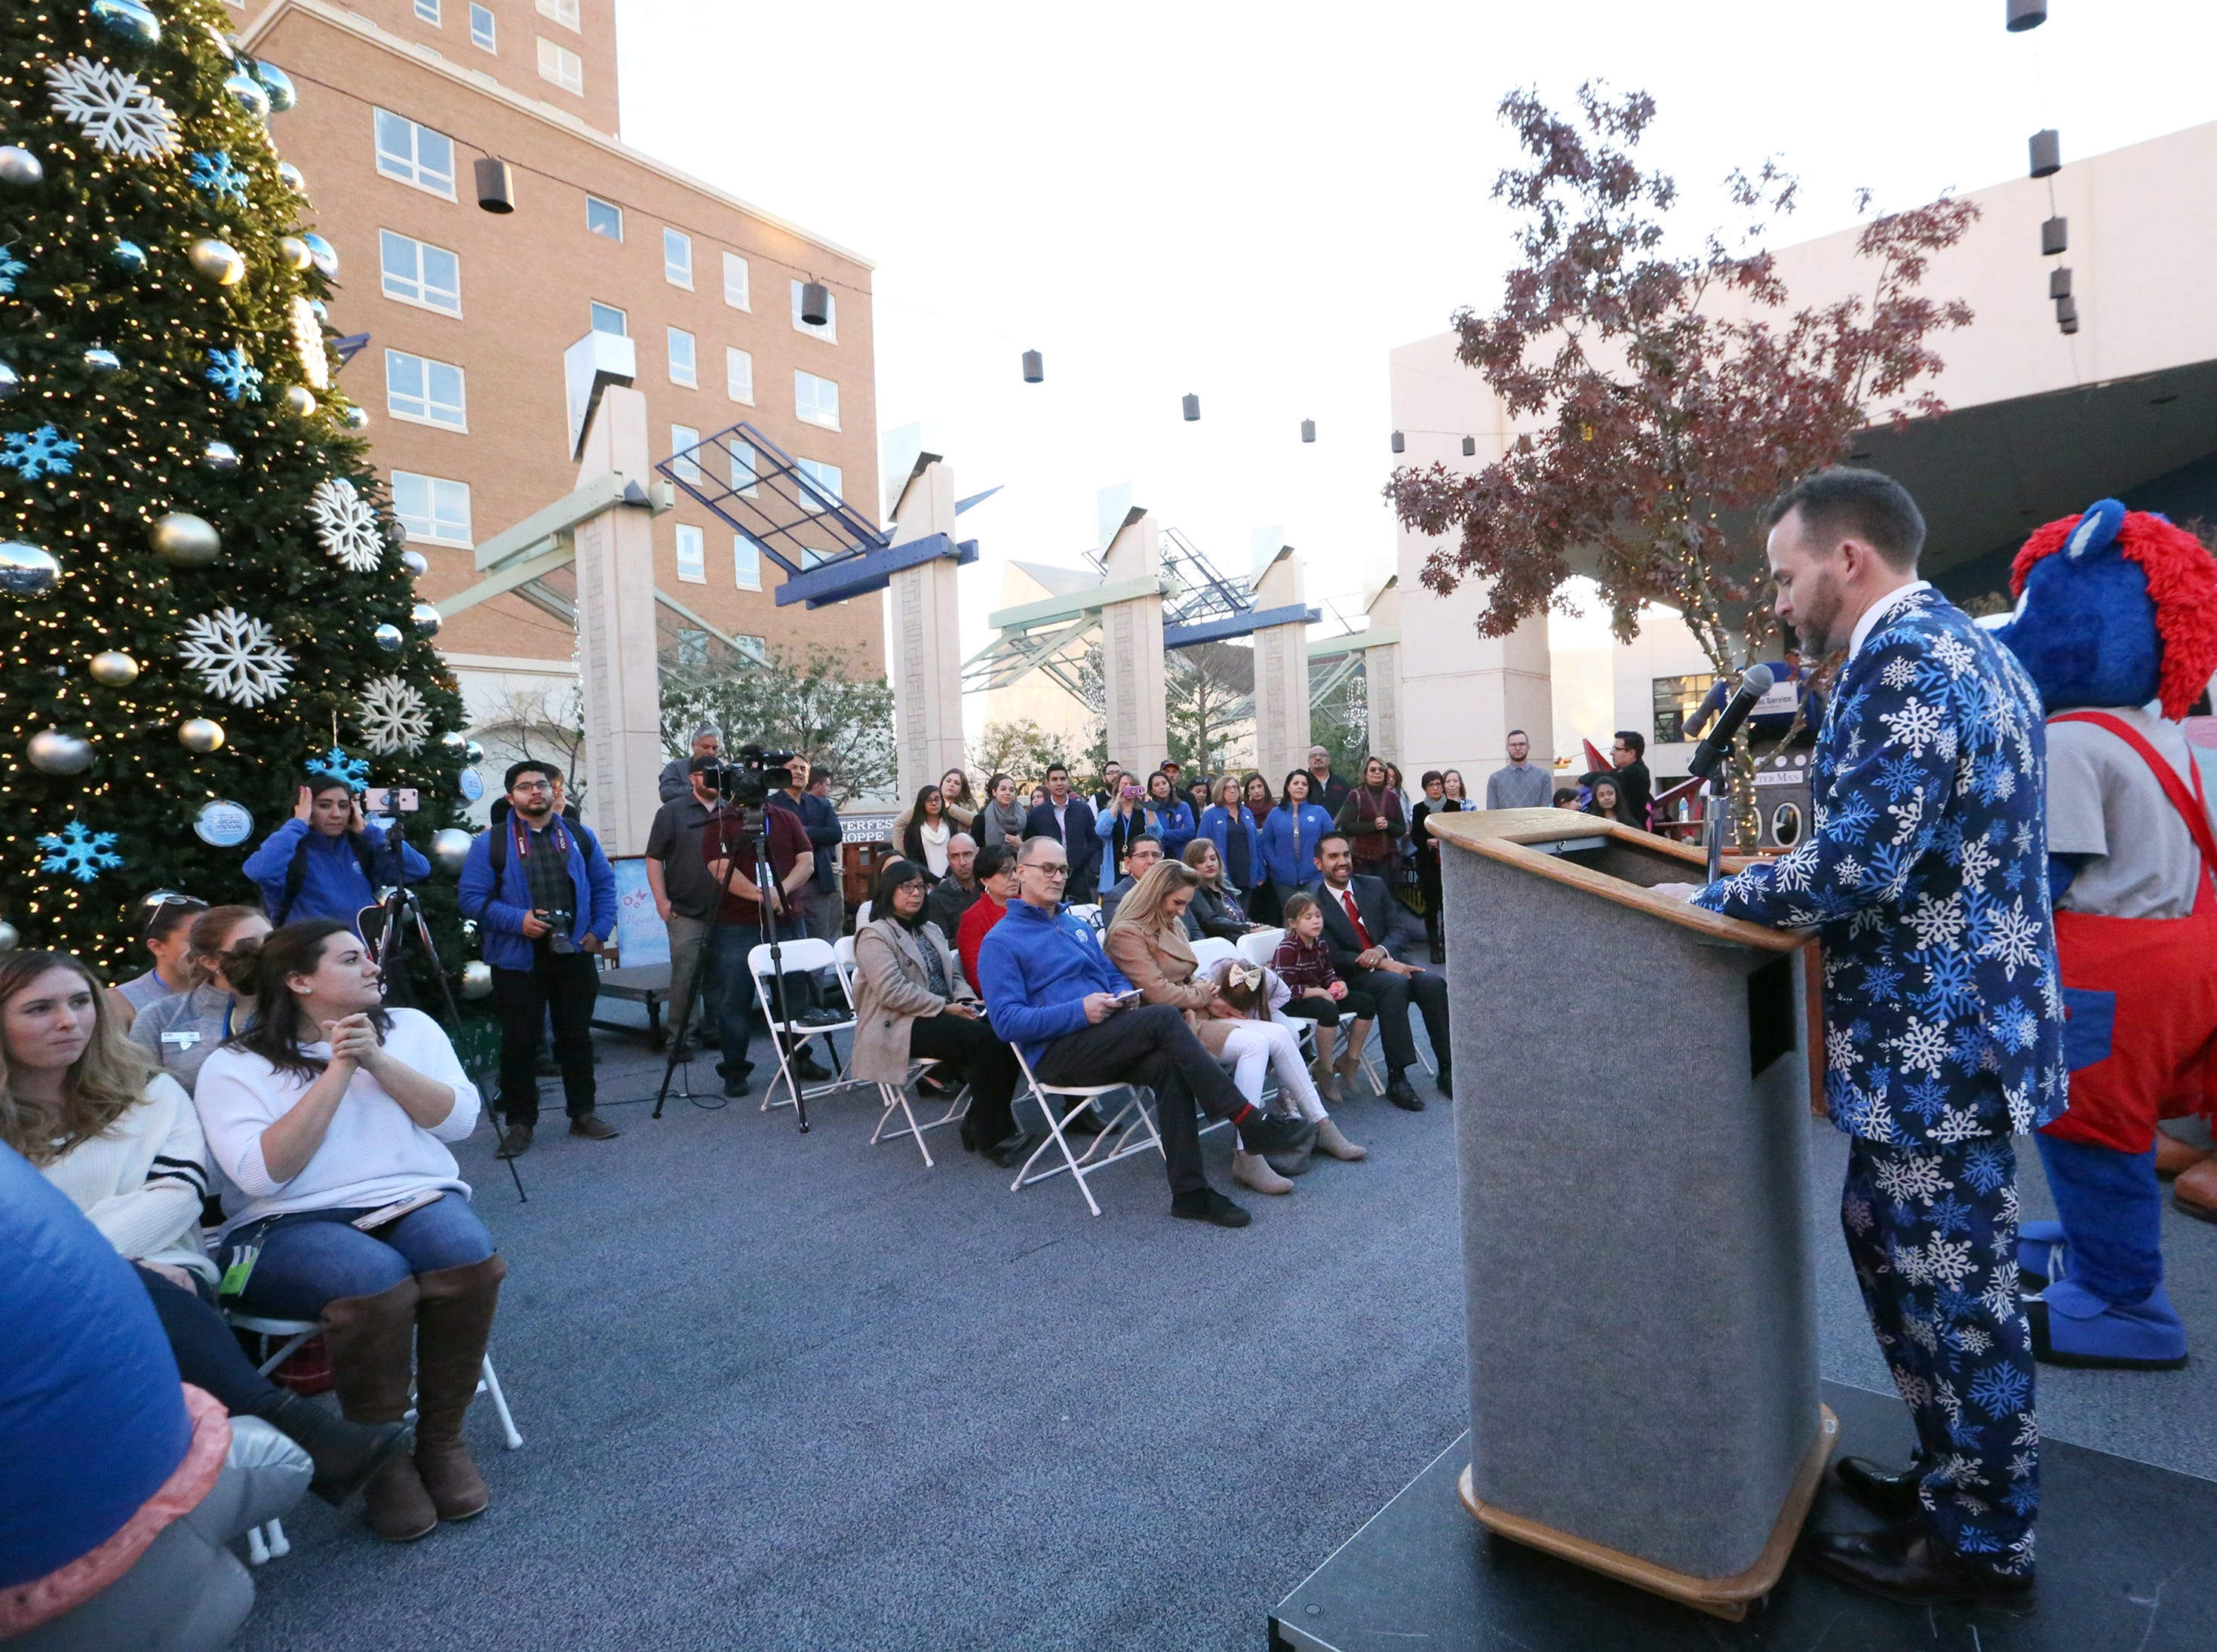 Bryan Crowe, general manager of Destination El Paso speaks at a 'Break The Ice' party and press conference Friday to celebrate the opening of the third season of WinterFest in downtown El Paso.